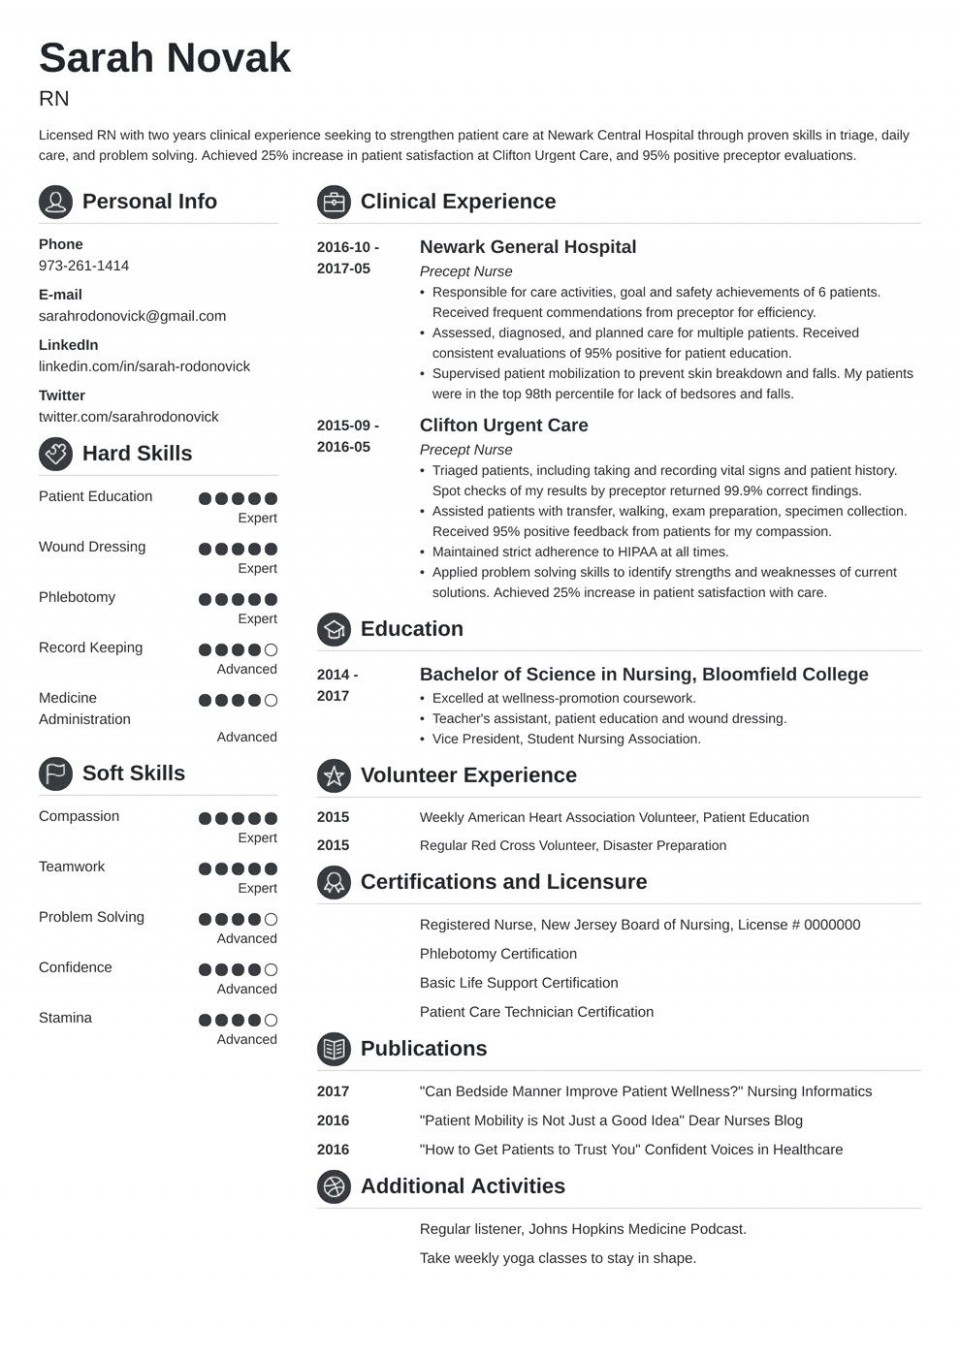 007 Marvelou New Grad Nursing Resume Template Photo  Graduate Nurse Practitioner960